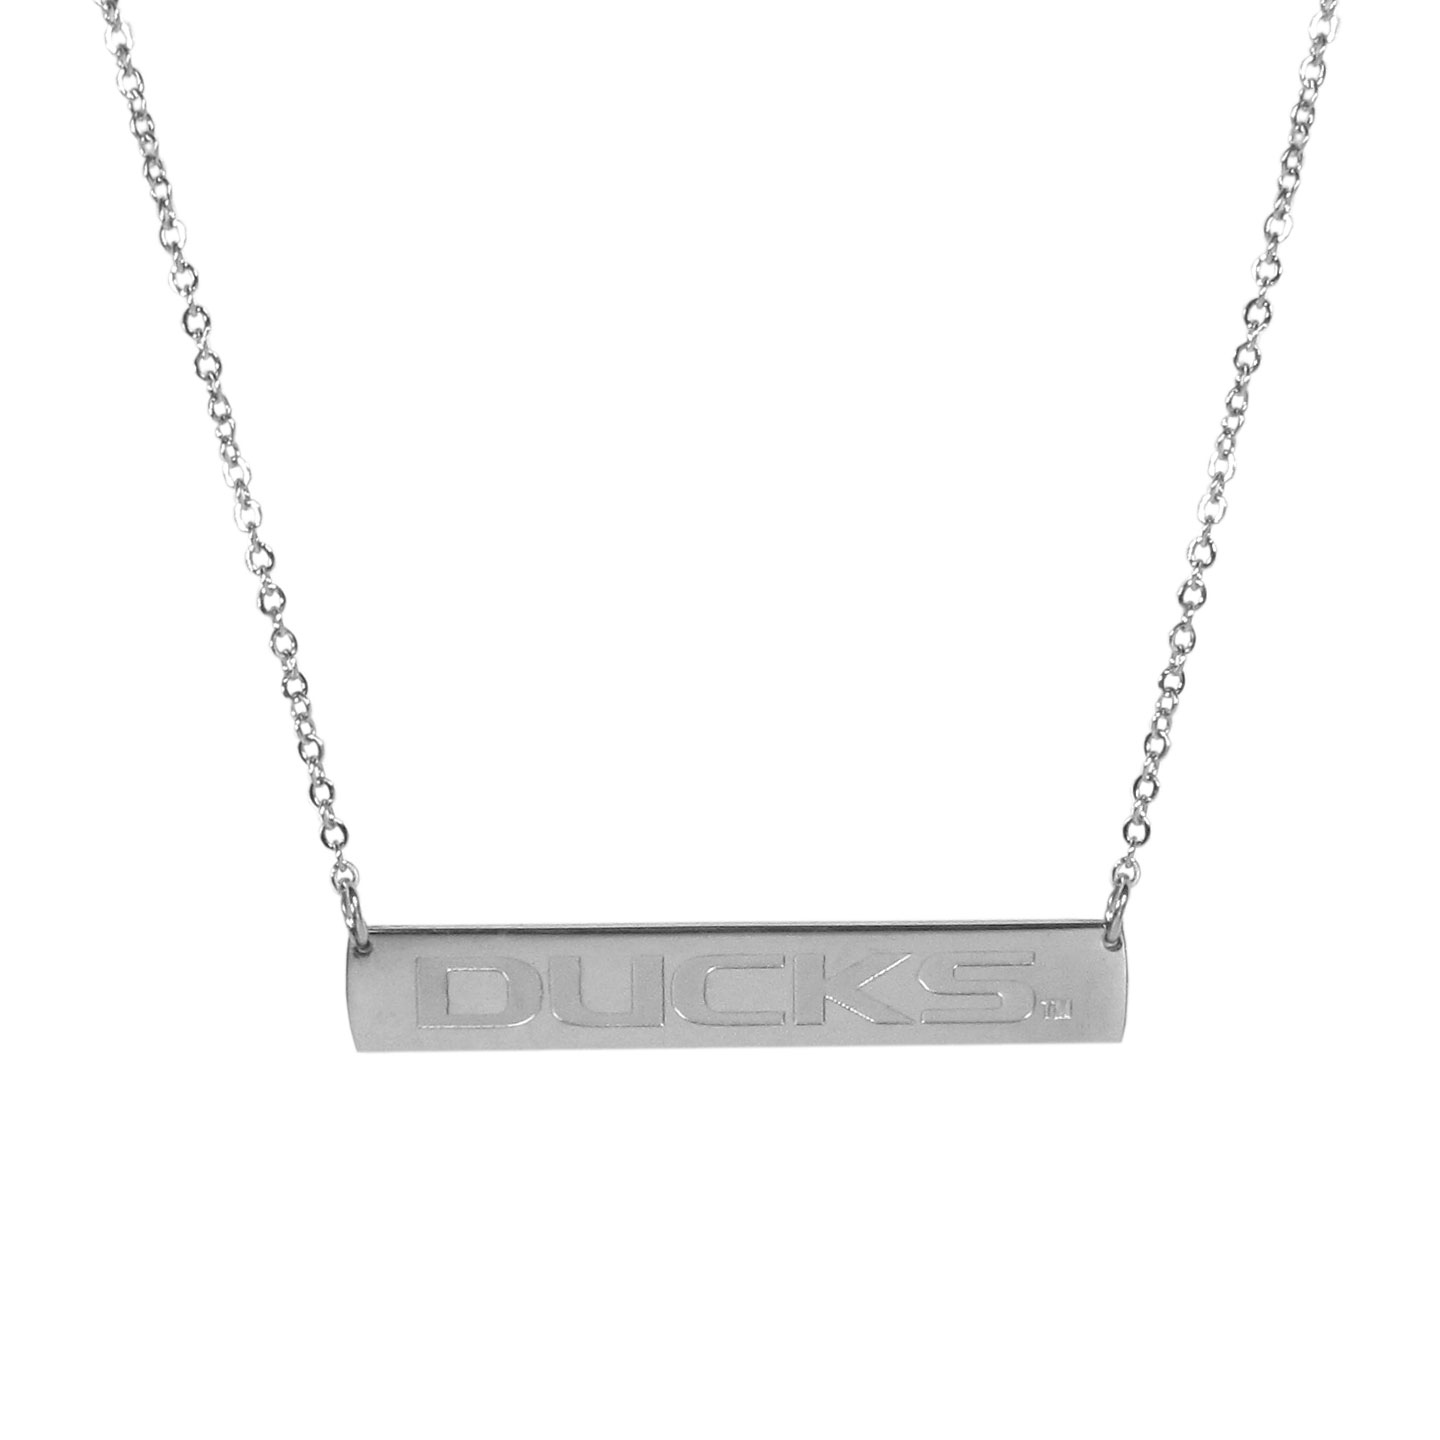 Oregon Ducks Bar Necklace - Simply beautiful Oregon Ducks bar necklace on a 20 inch link chain with 2 inch adjustable extender. This light-weight bar necklace has a stylish silver colored finish with the team name expertly etched on the 1.5 inch bar. Every female  fan will enjoy this contempory fashion accessory.